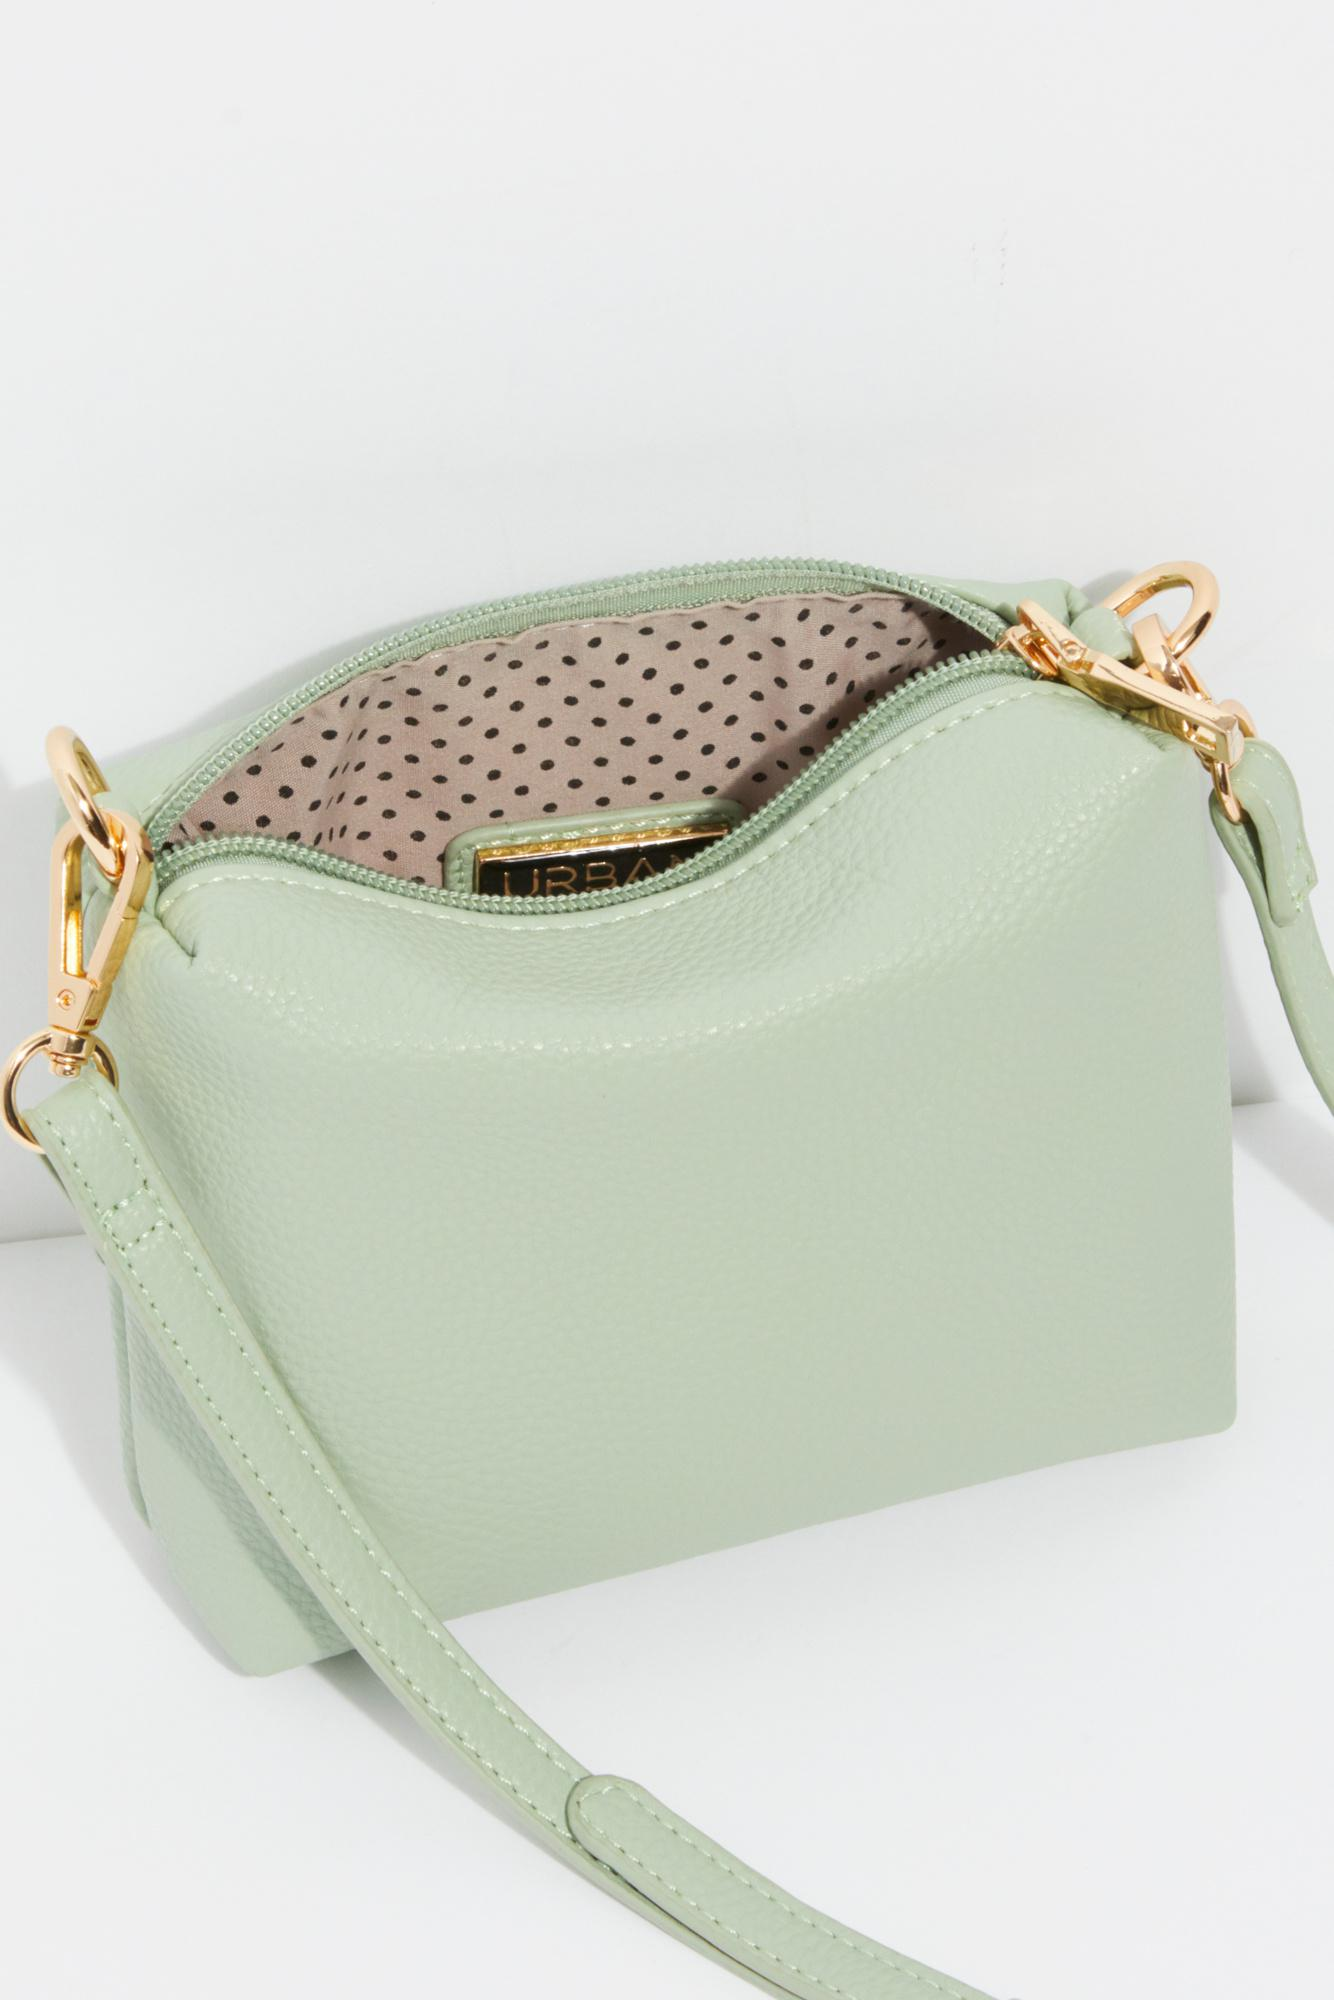 Free People Cassia Vinyl Tote By Modaluxe in Mint (Green)